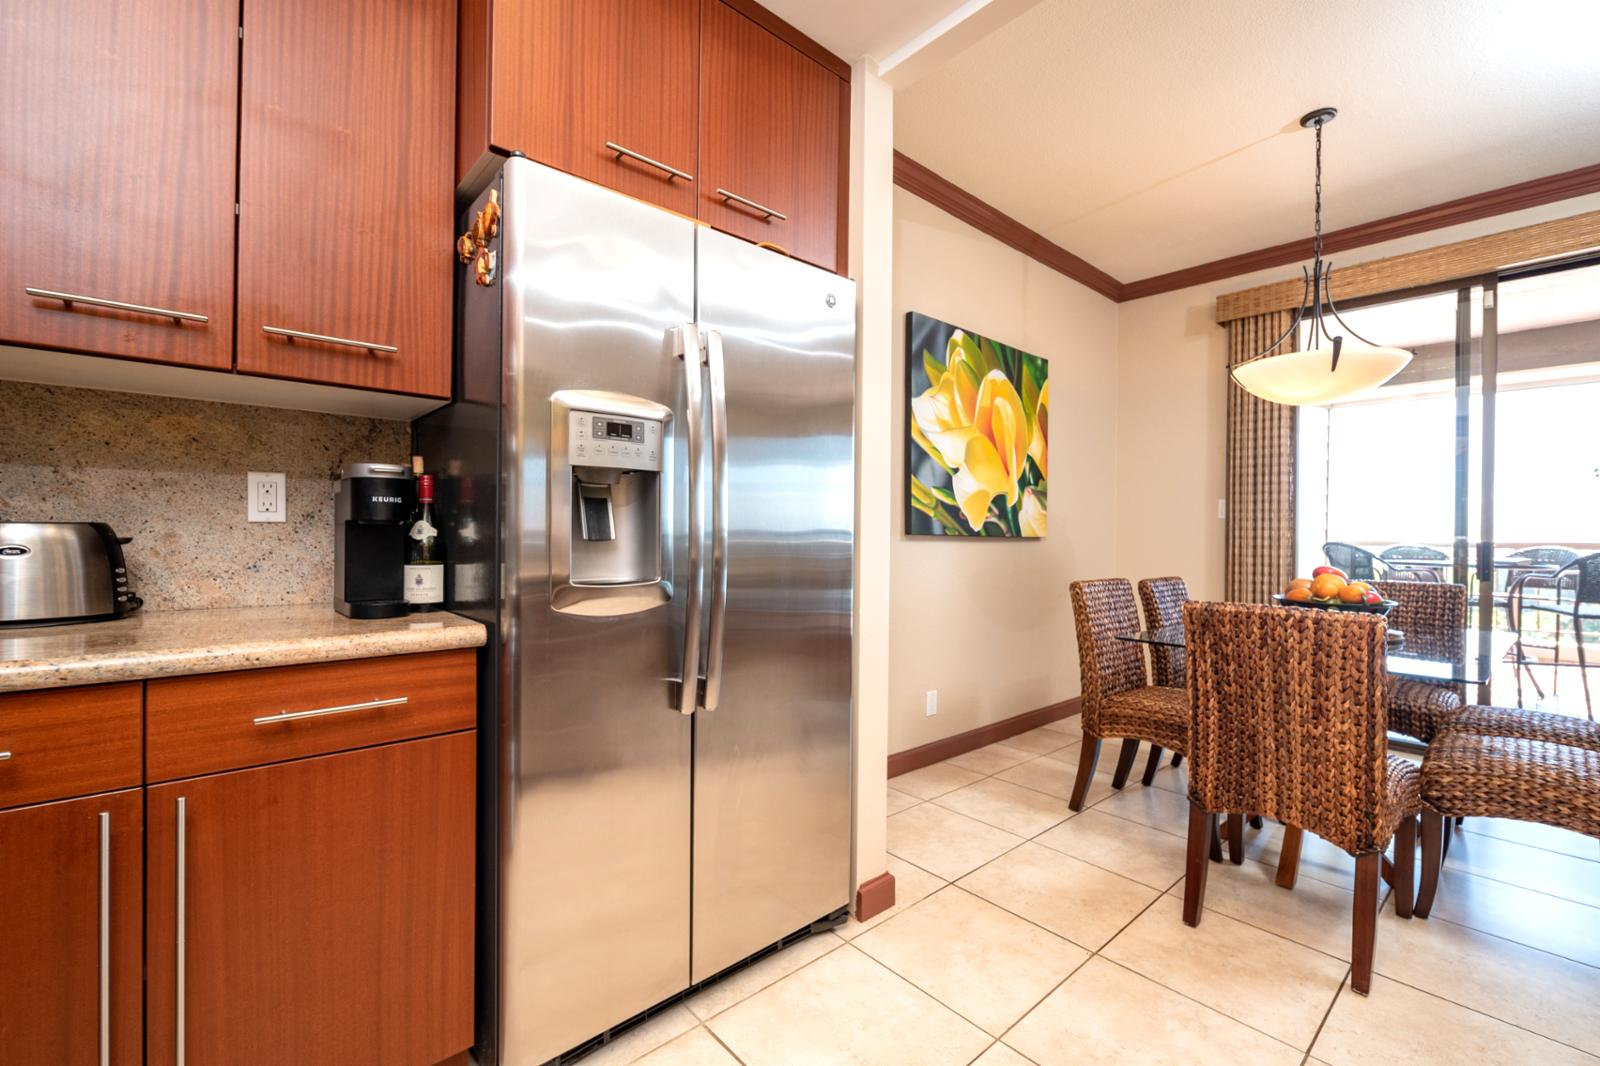 Large kitchen comes fully equipped!